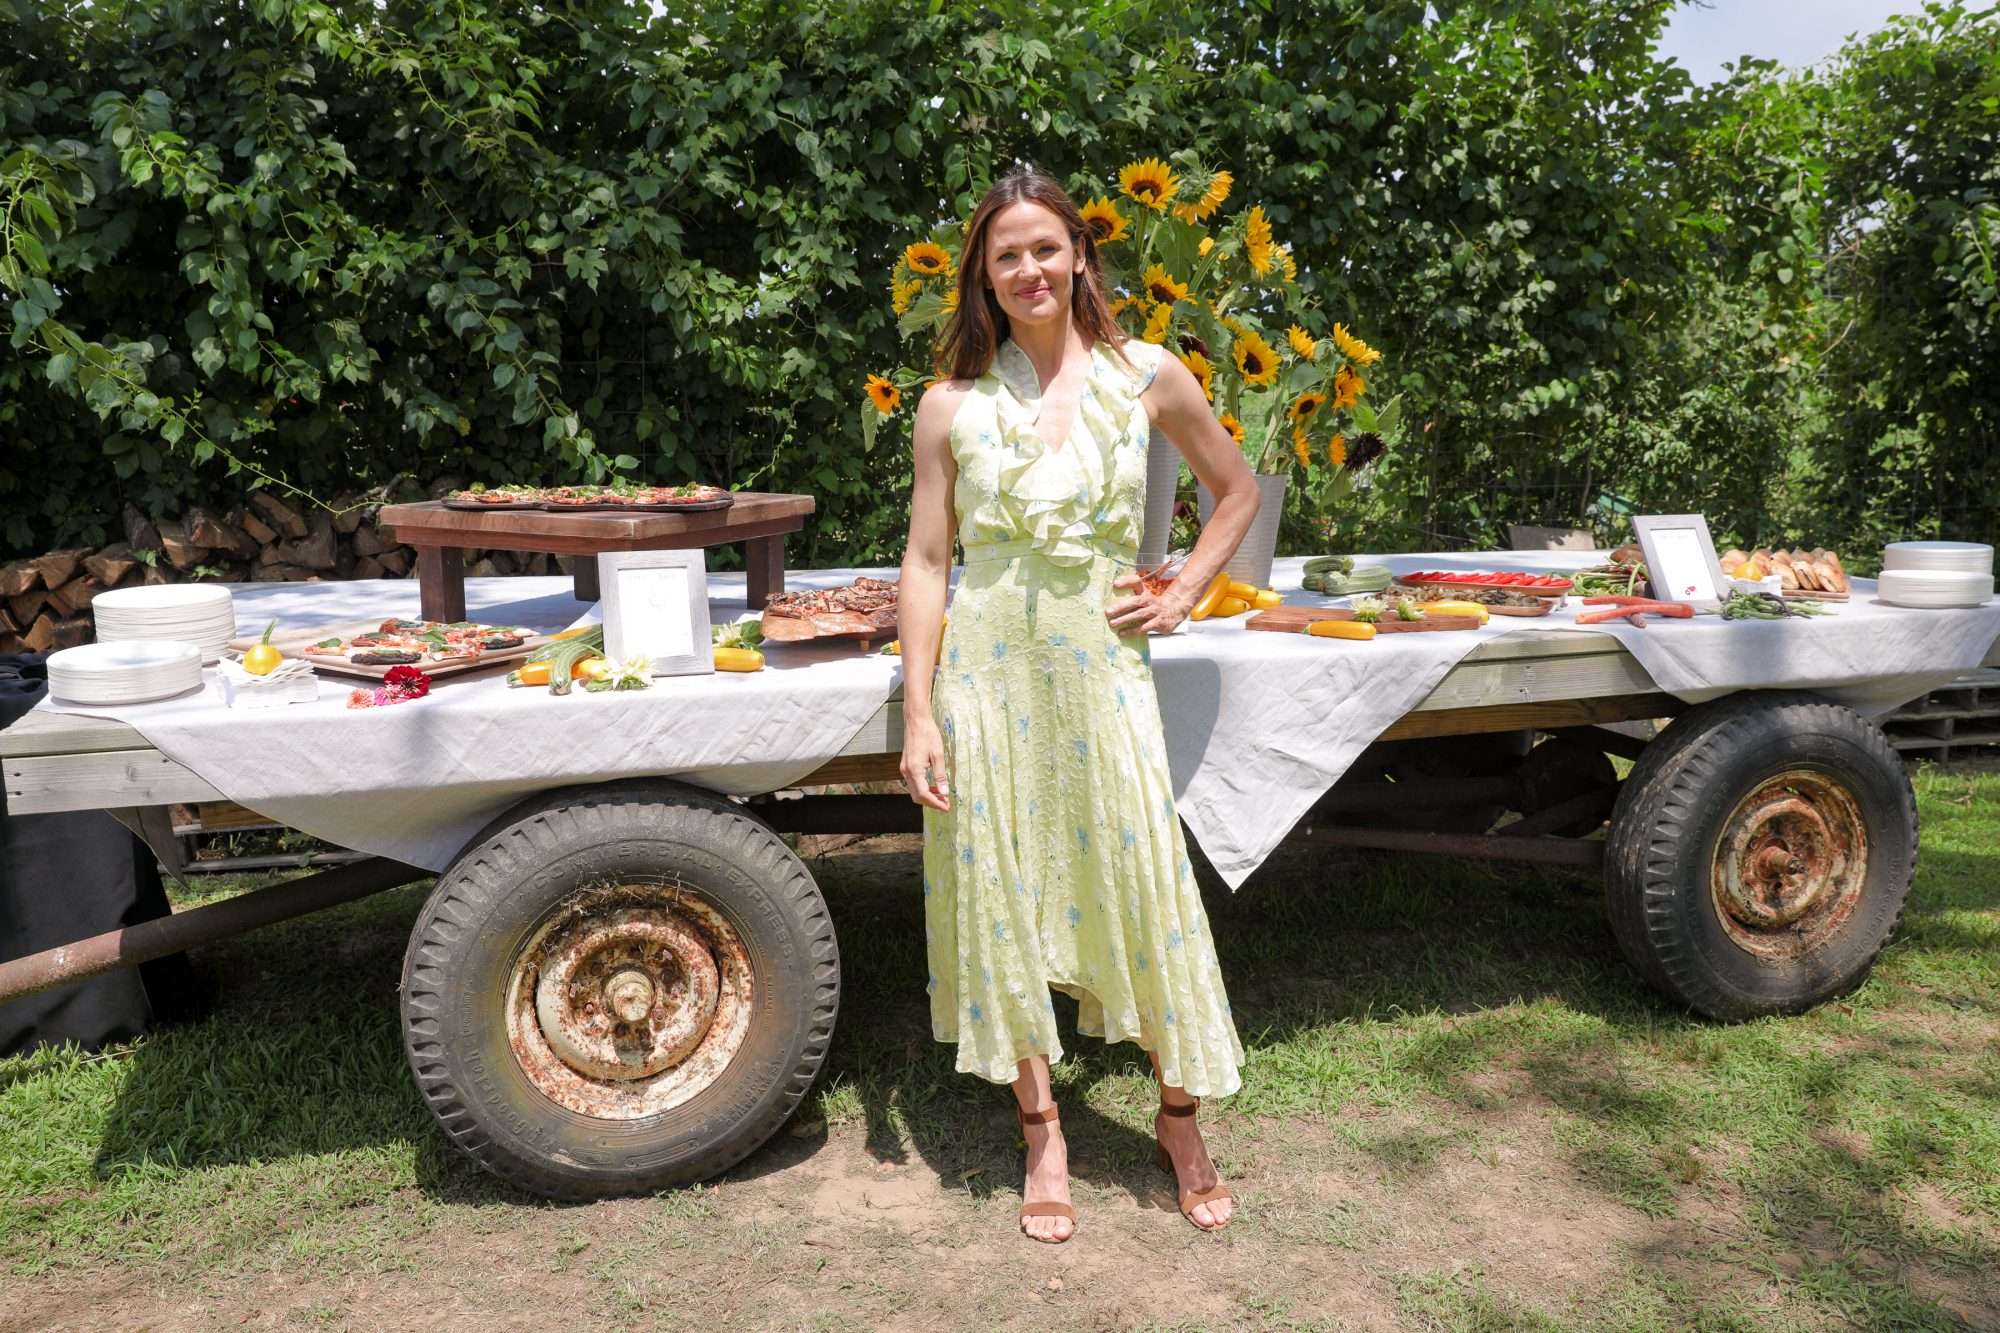 [EXCLUSIVE FOR PEOPLE] JENNIFER GARNER CELEBRATES ONCE UPON A FARM, THE FAMILY ORGANIC FOOD BRAND : AT HAMPTONS GARDEN